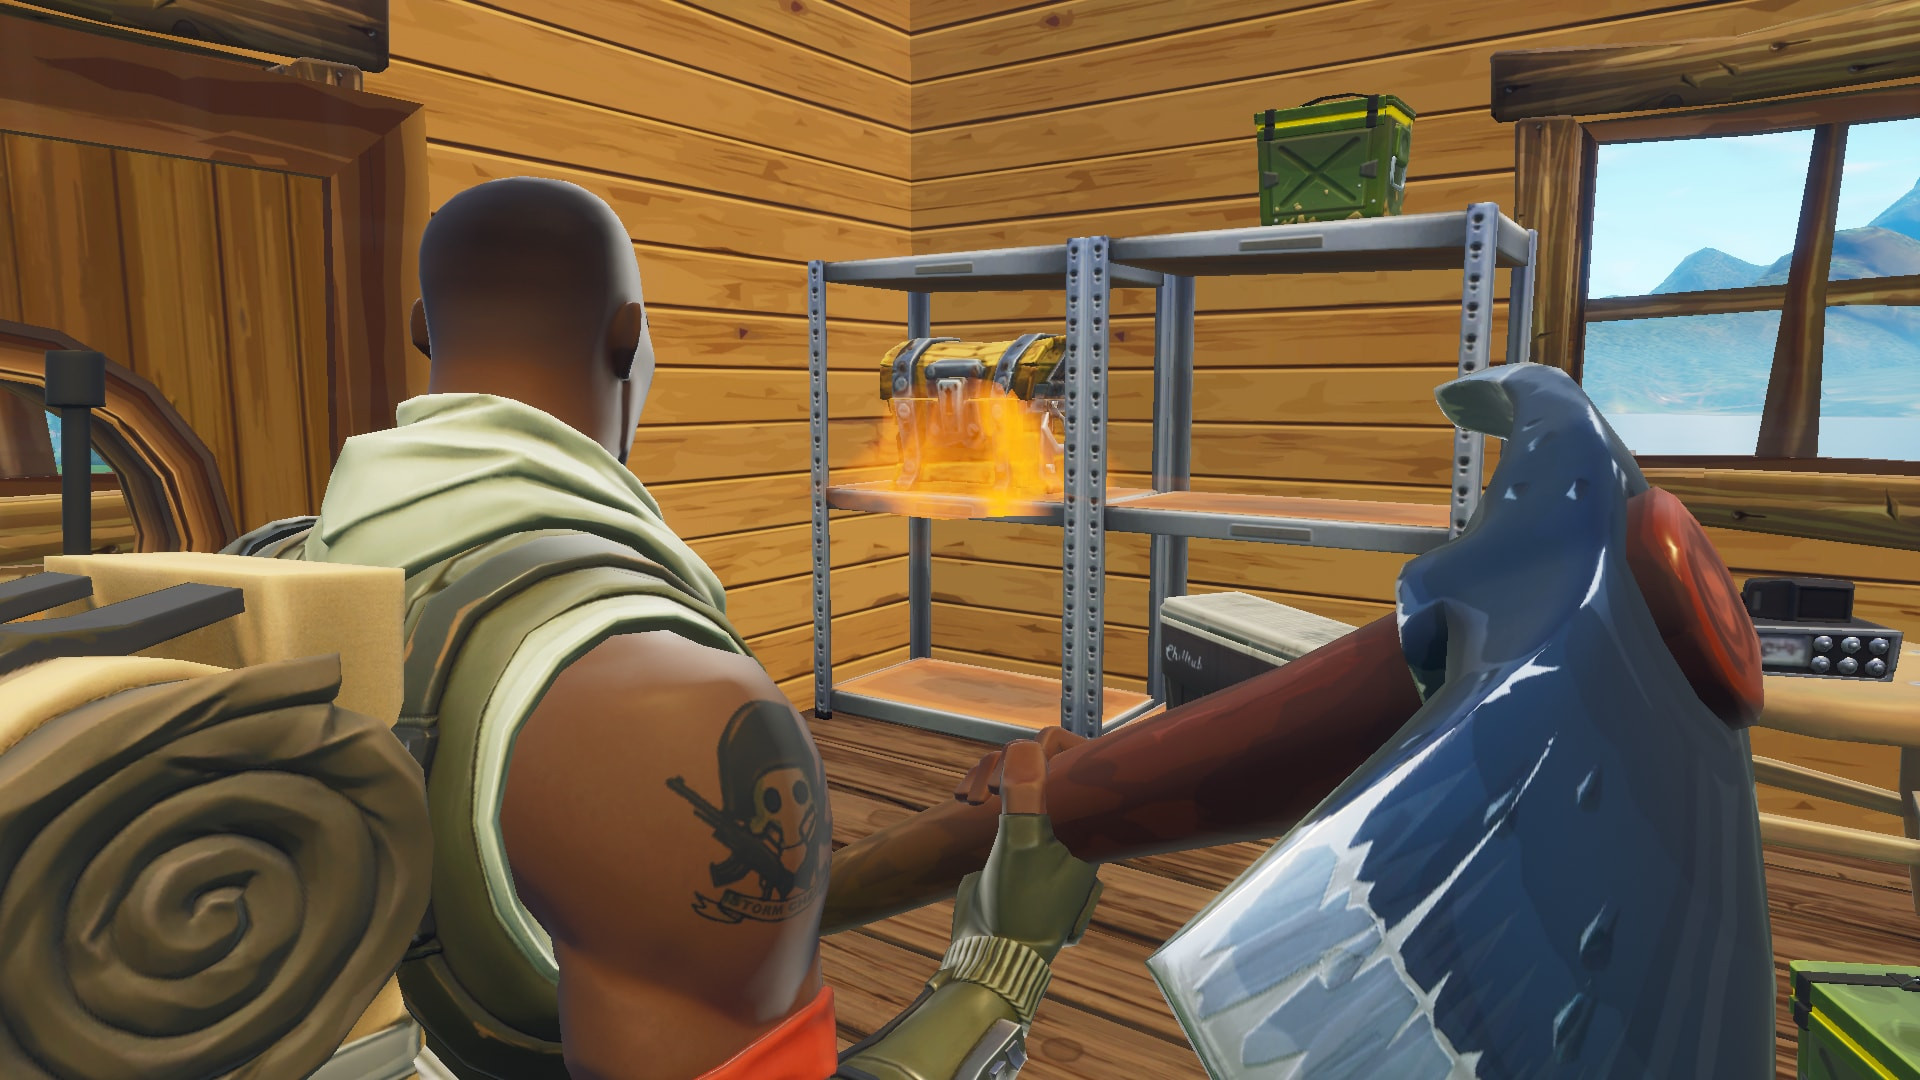 Chest Location 2 in Lonely Lodge | Fortnite - zilliongamer your game guide